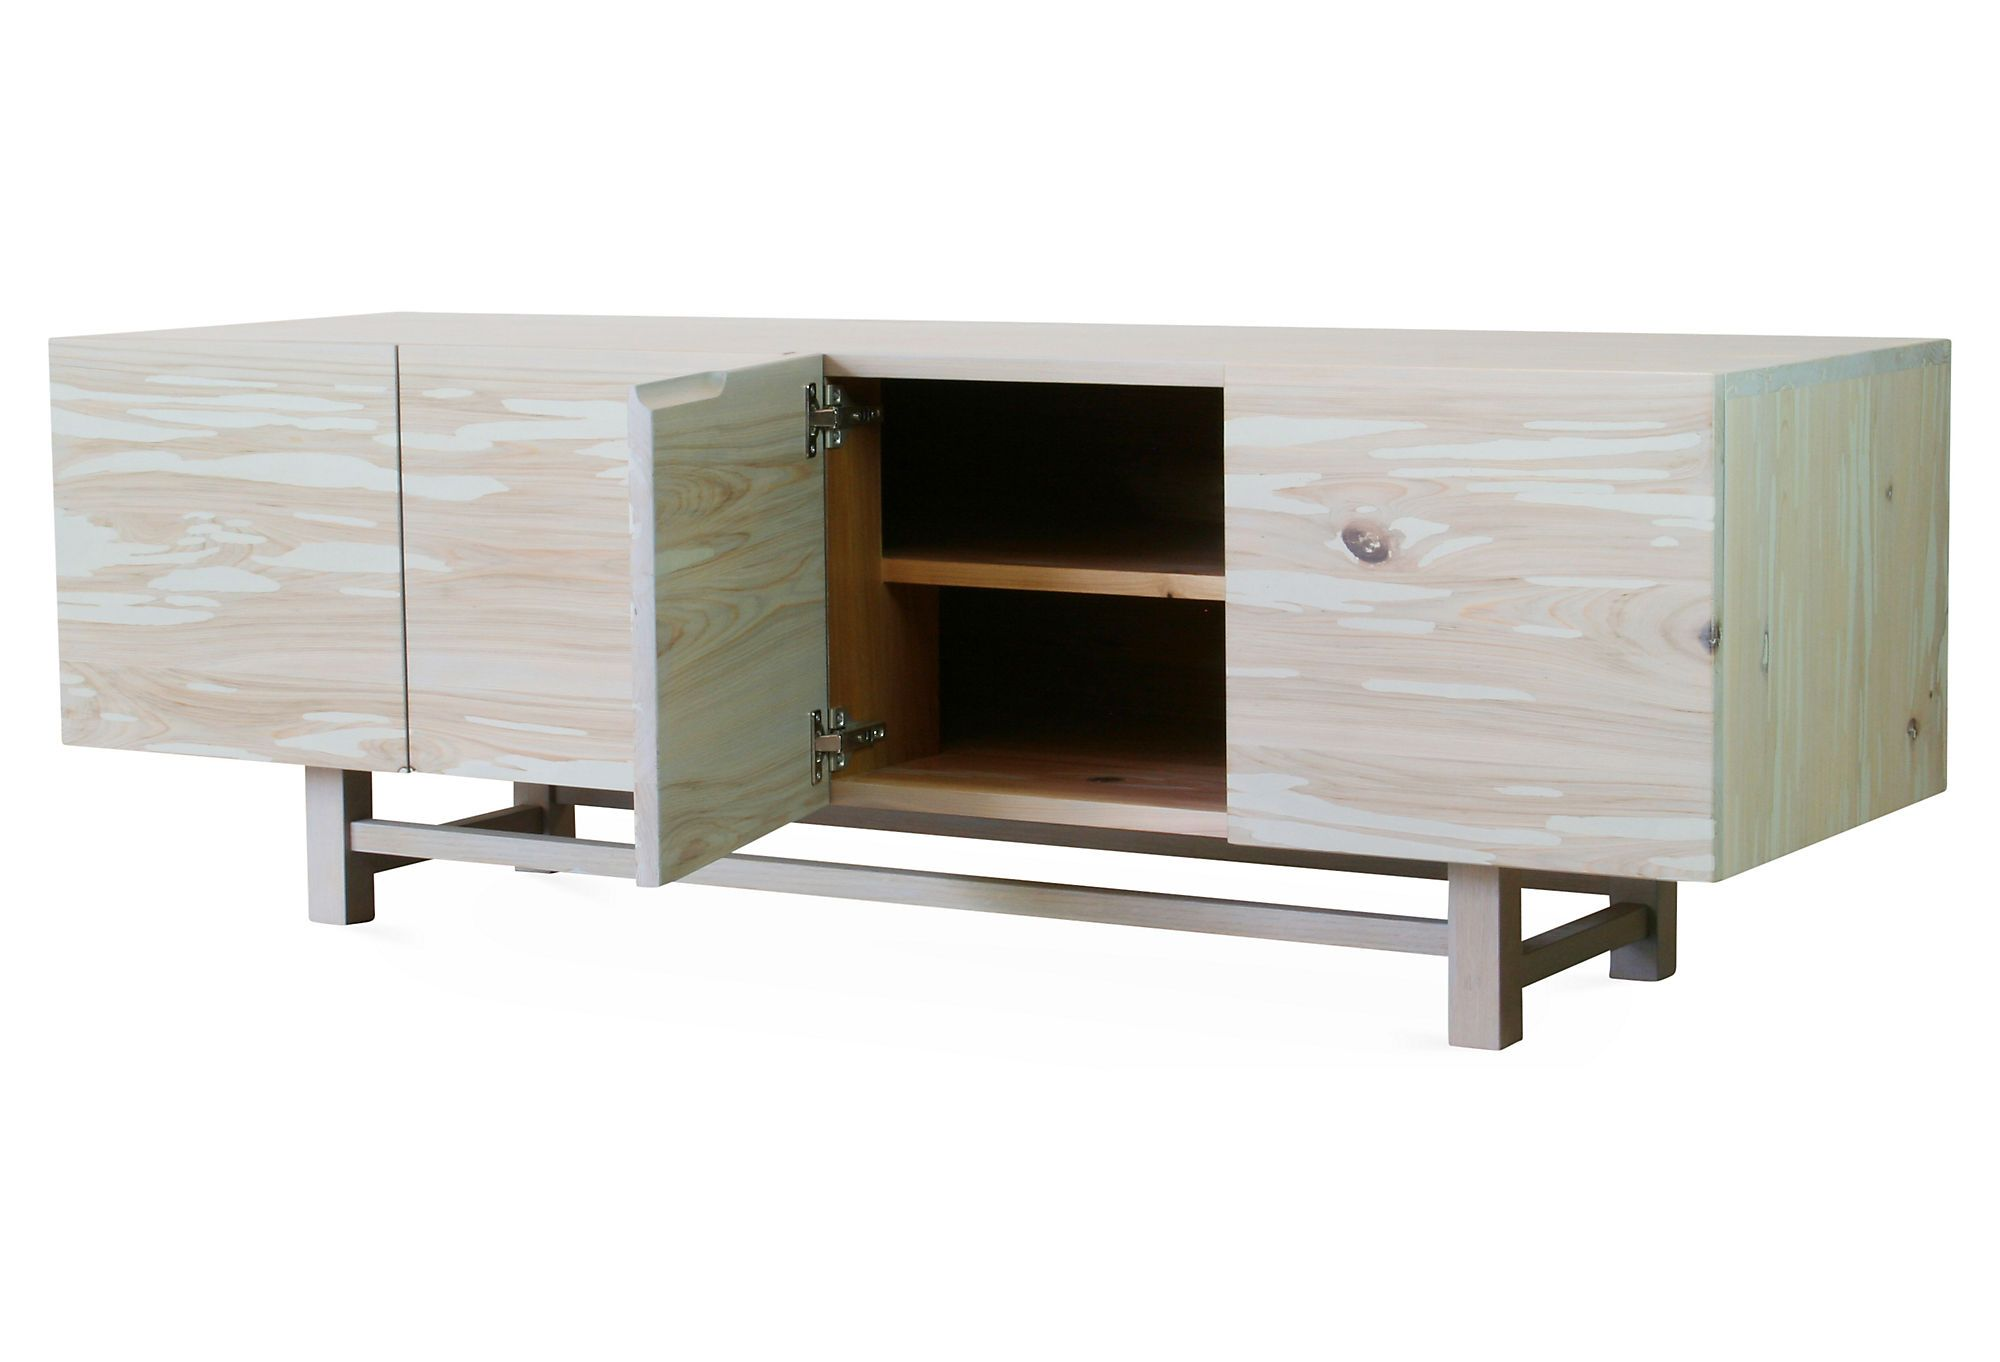 Lowboy Media Cabinet, Light Gray | Sugarbone Goods